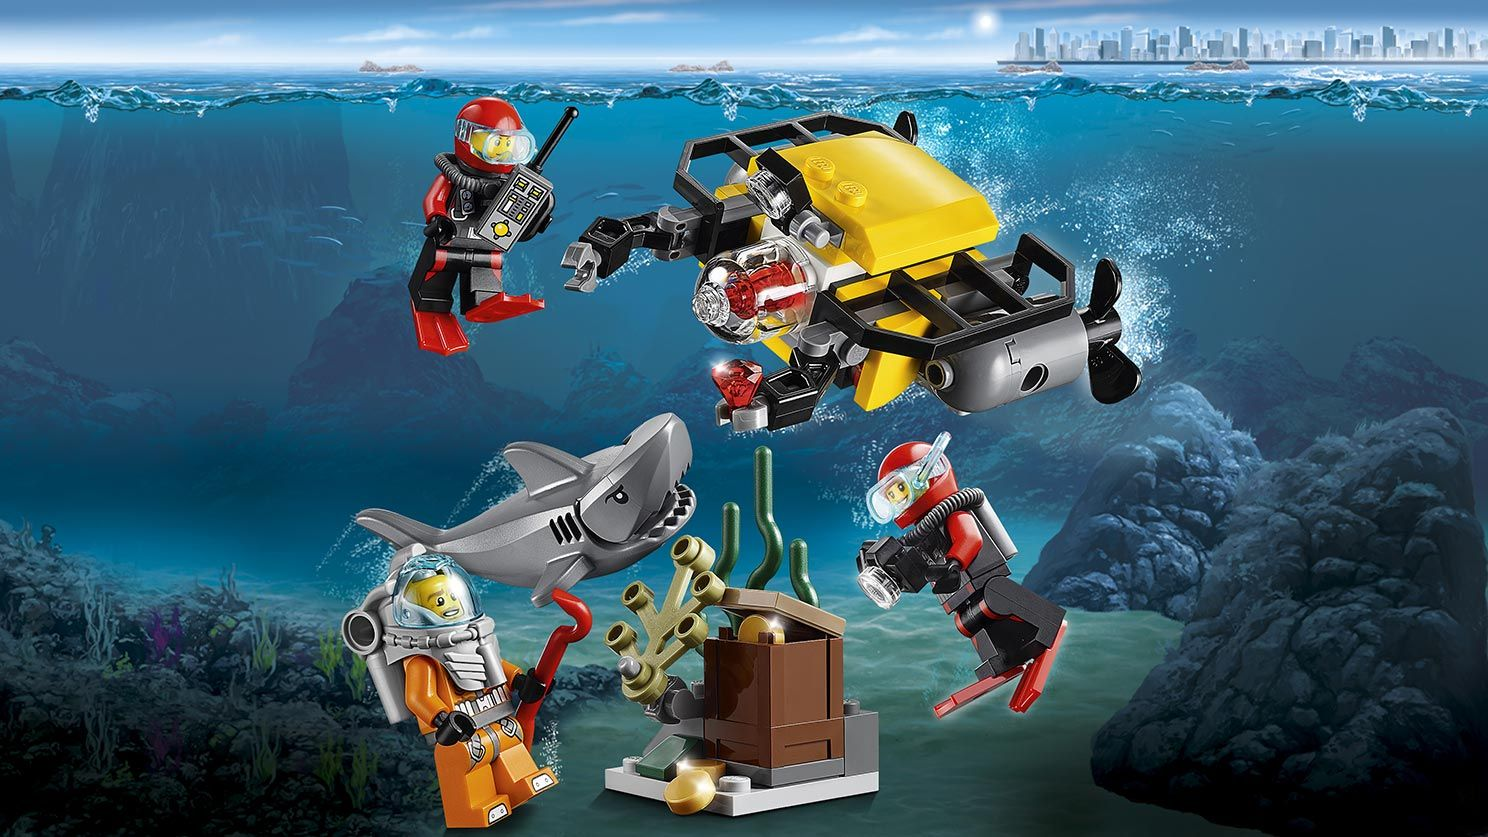 Lego City, Deep-sea Starting Set, March 2016